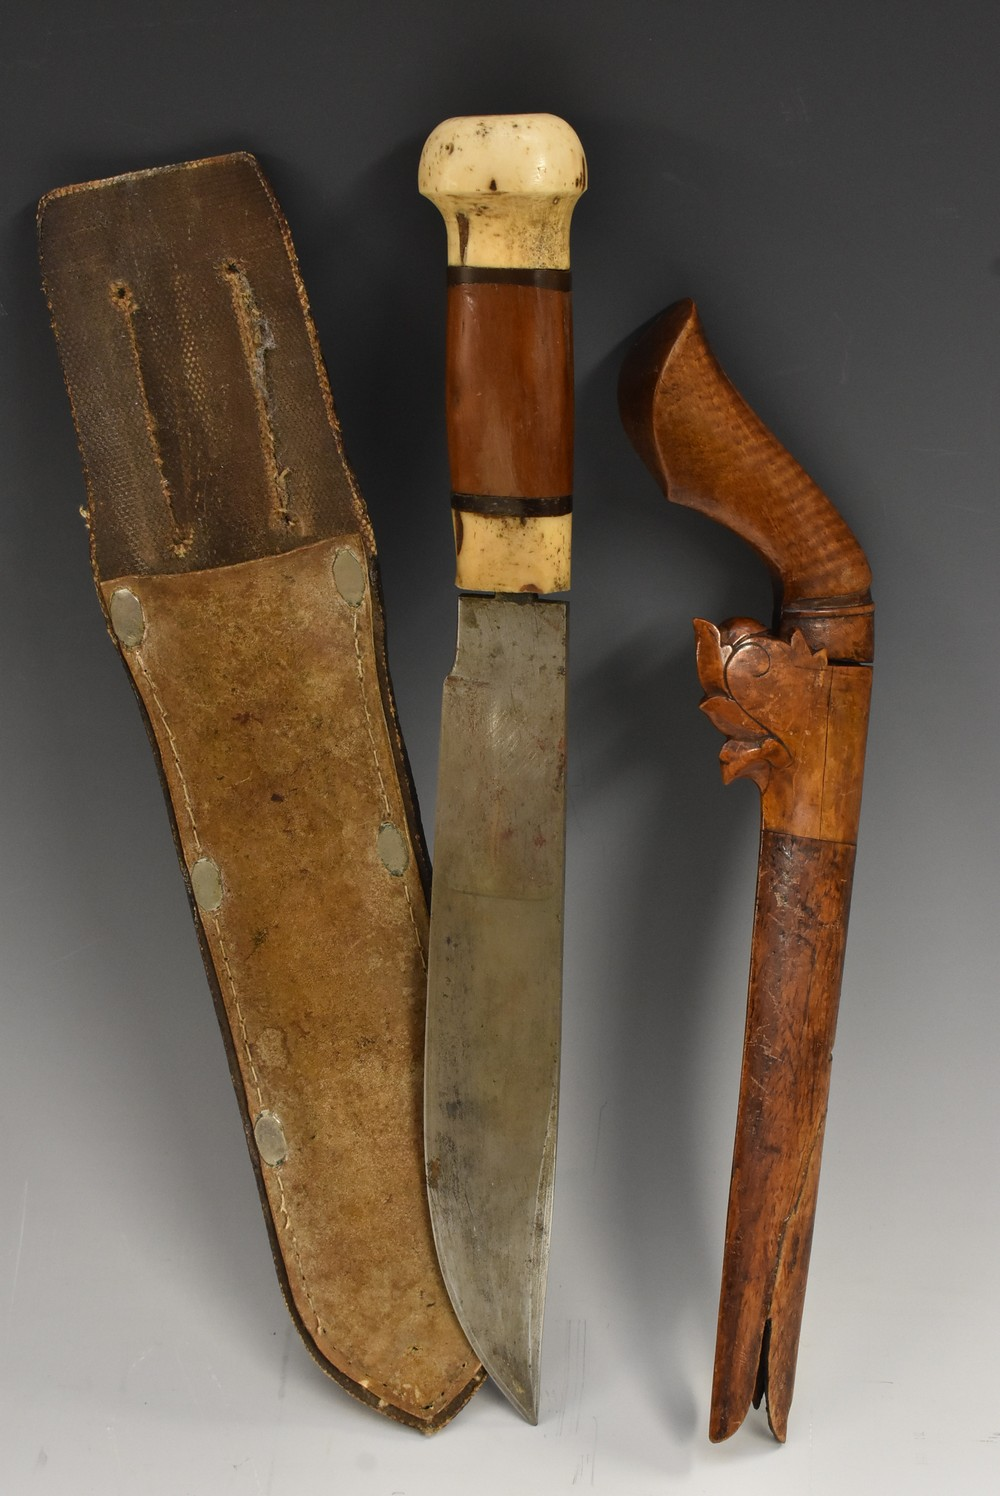 Lot 3017 - A Colonial dagger or utility knife, 23cm machete type blade, bone and hardwood hilt, 35.